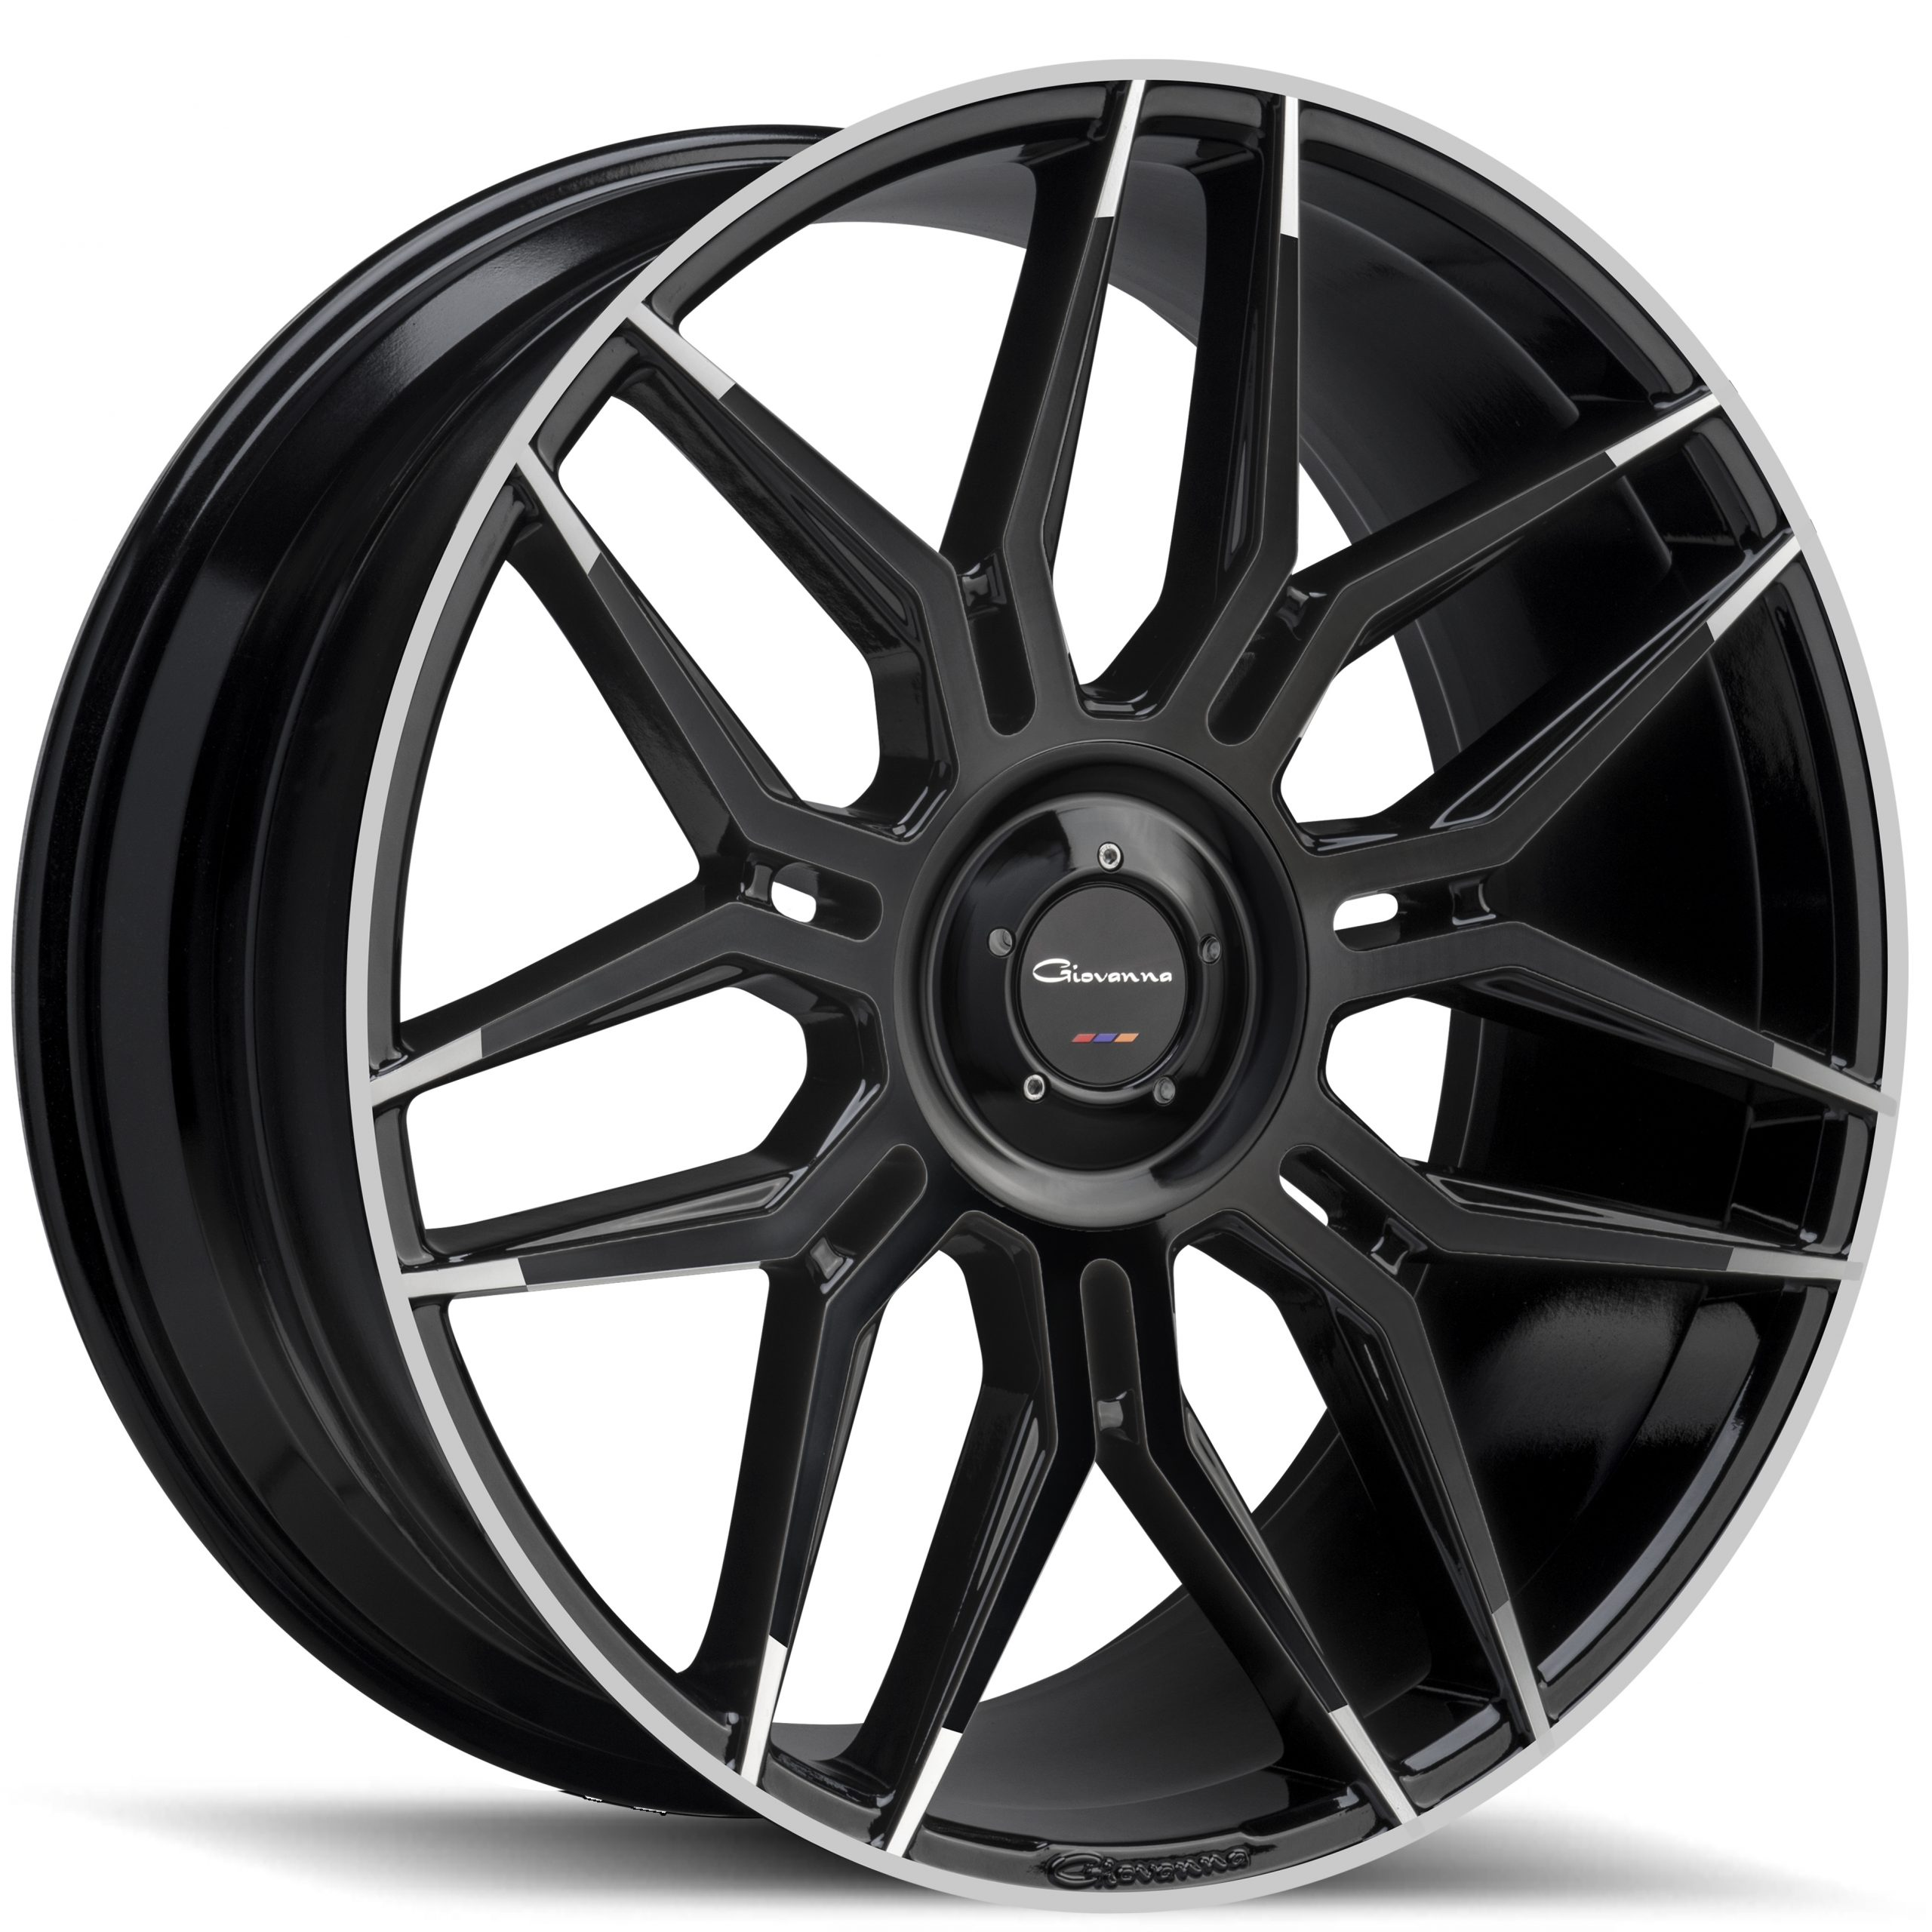 Giovanna Luxury Wheels Giovanna Luxury Concave Wheels For Cars Trucks And Suv S